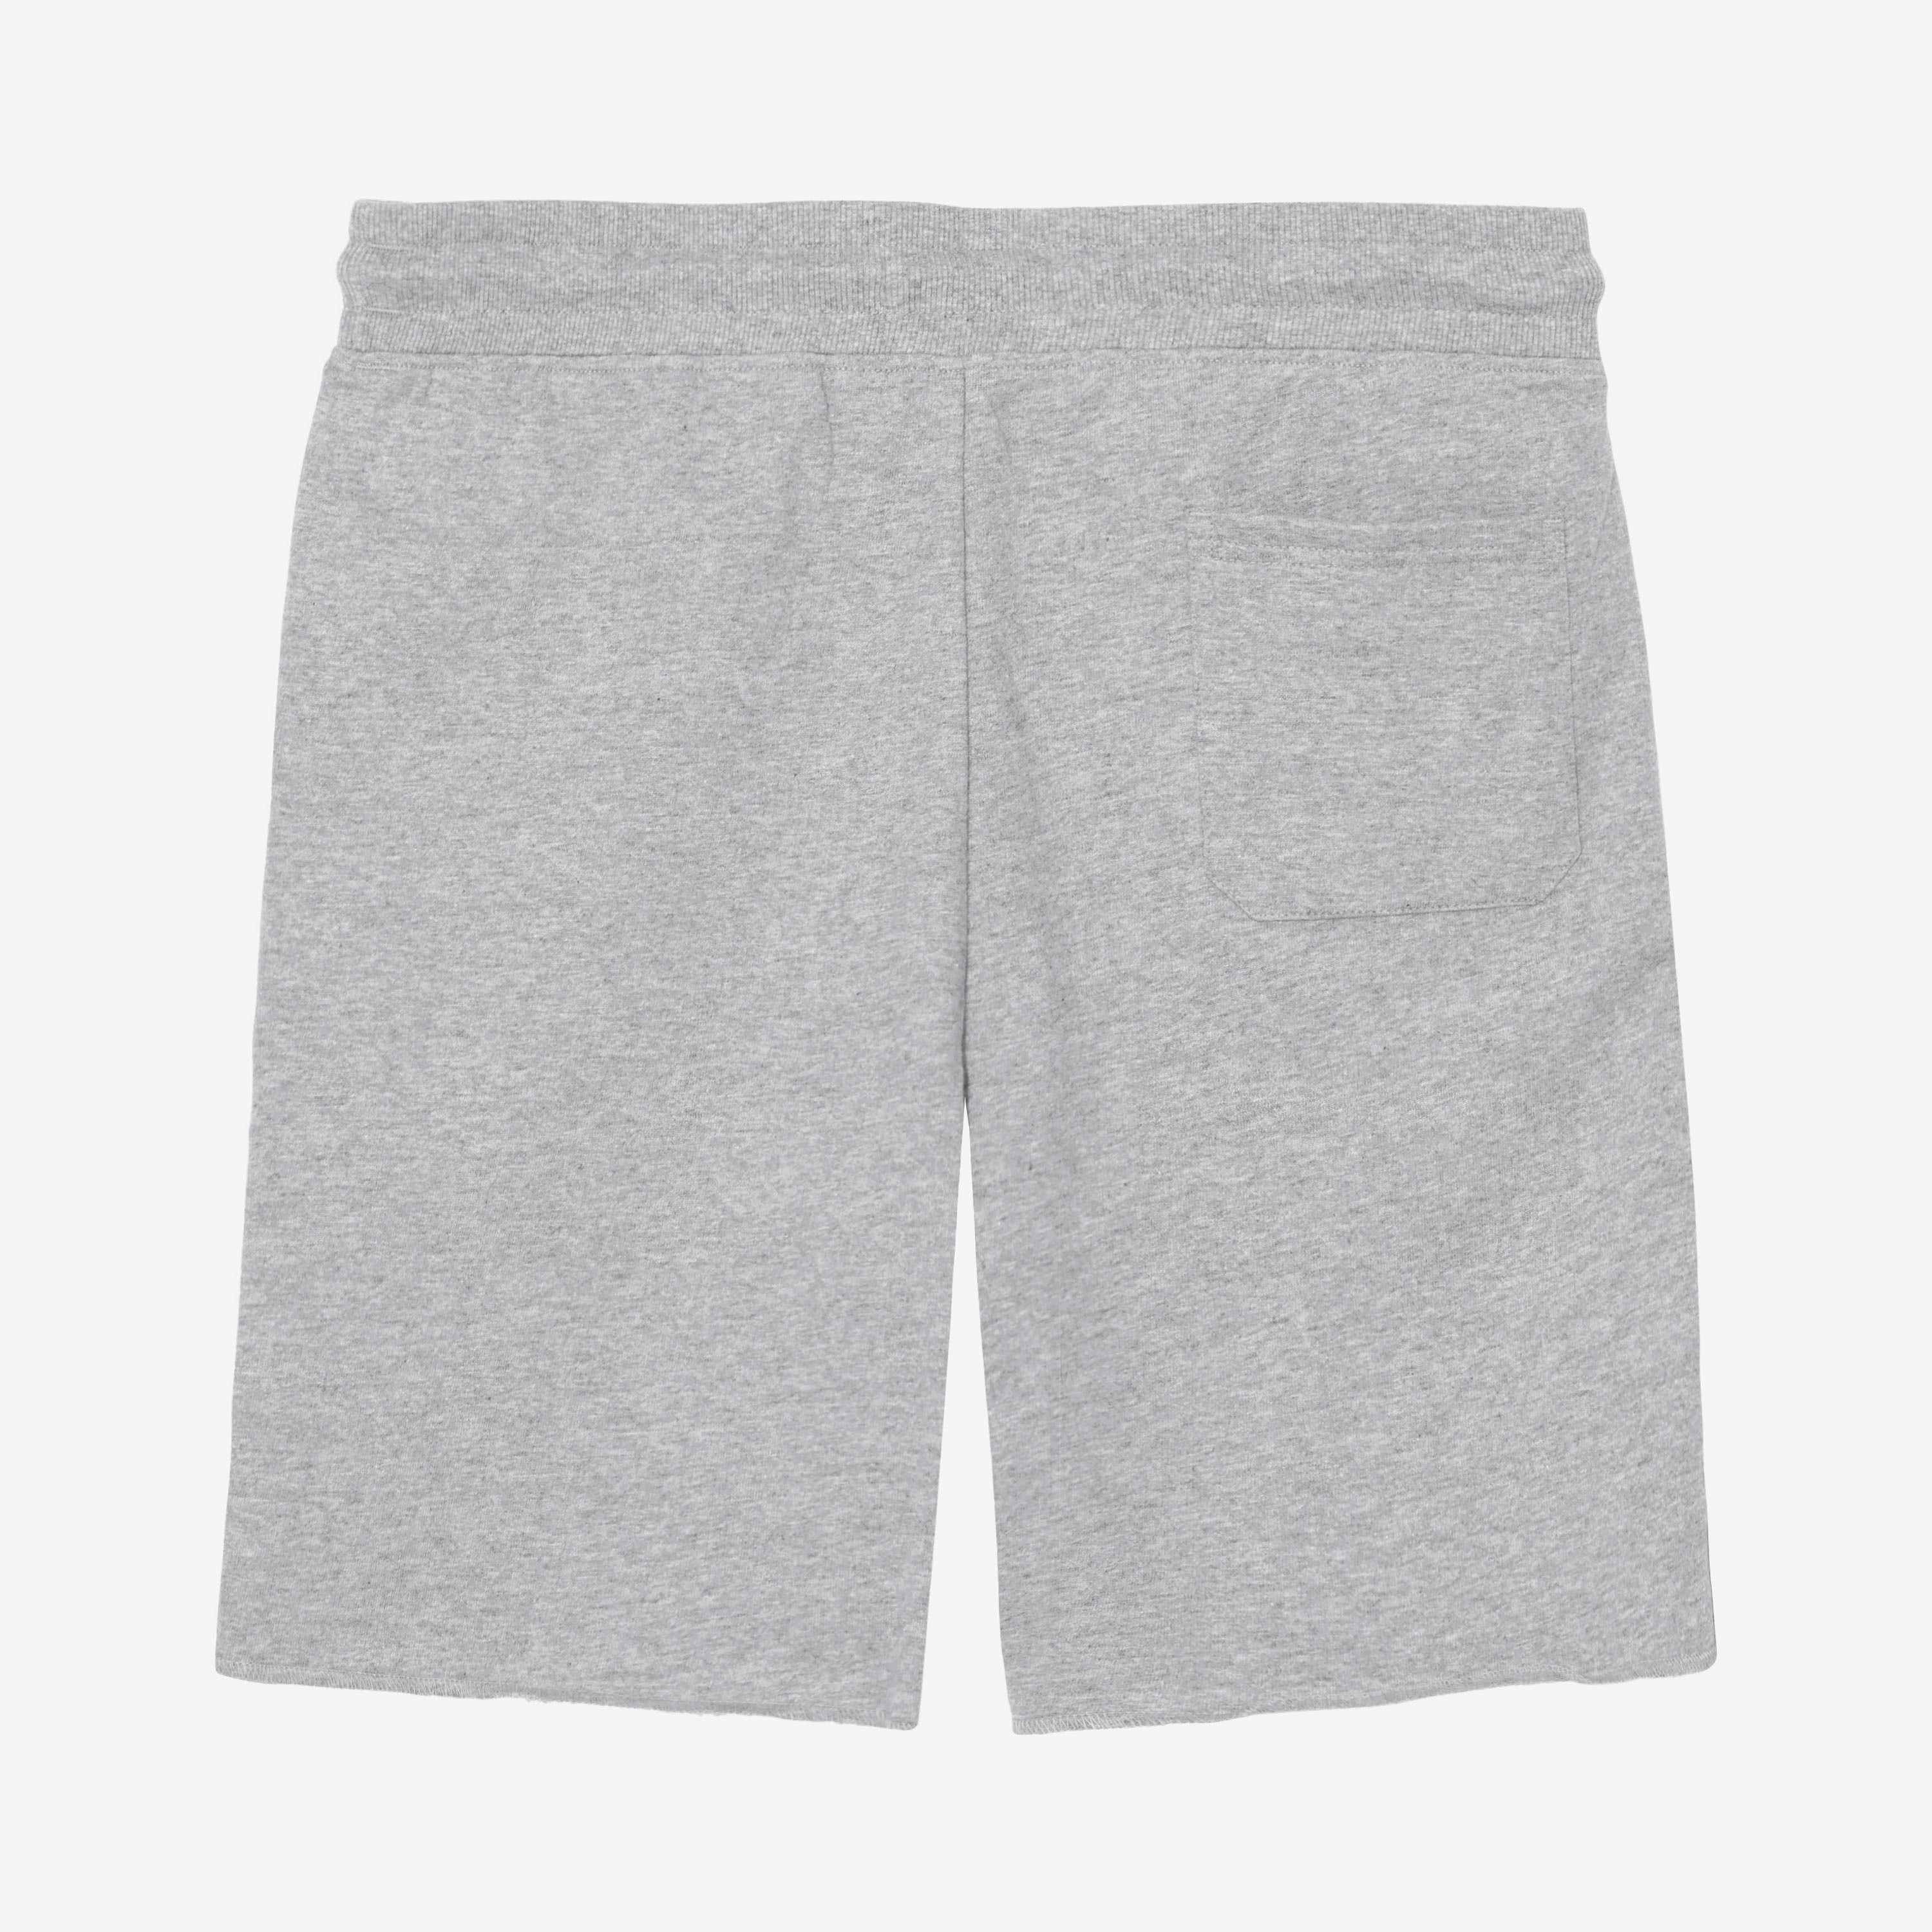 424203_Man_Lounge_Short_grey-melange_B